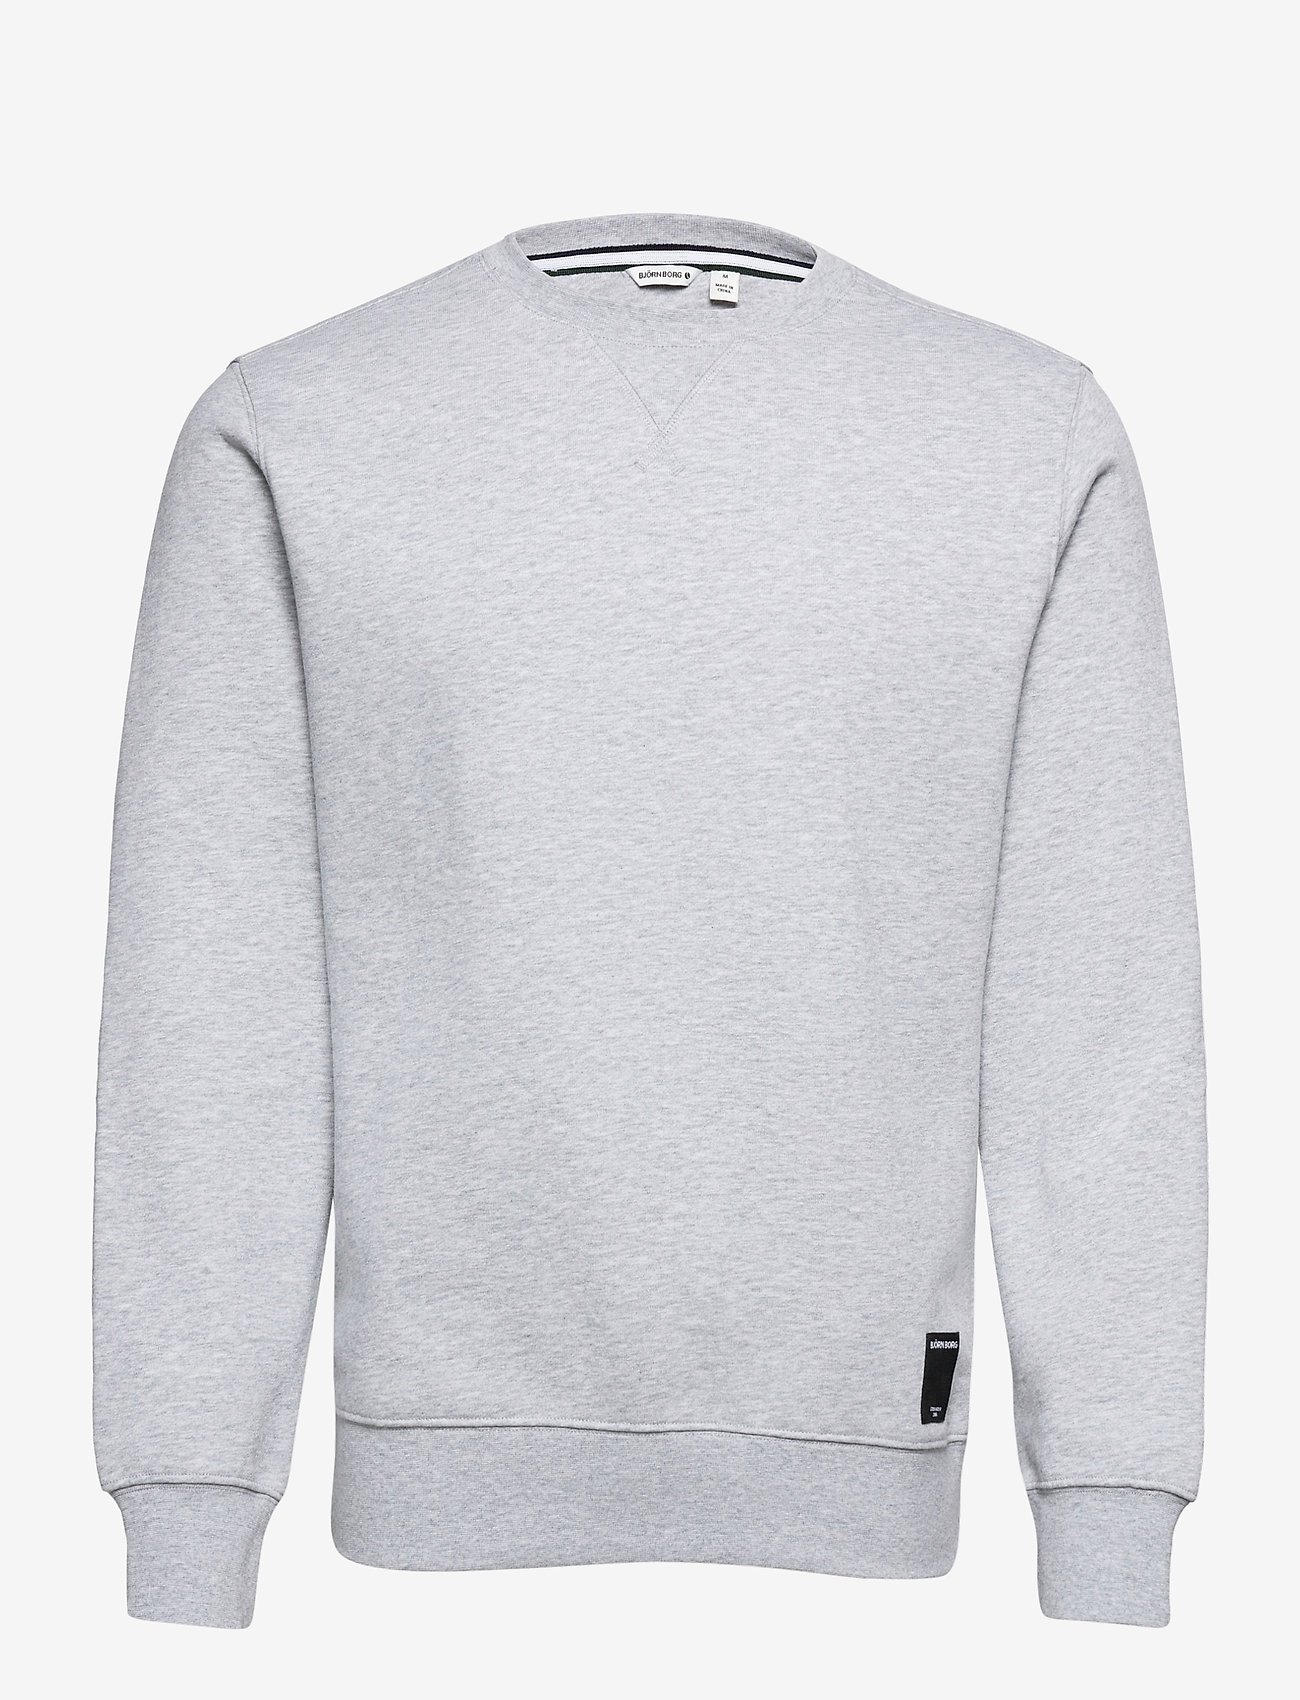 Björn Borg - CREW CENTRE CENTRE - basic sweatshirts - h108by light grey melange - 0